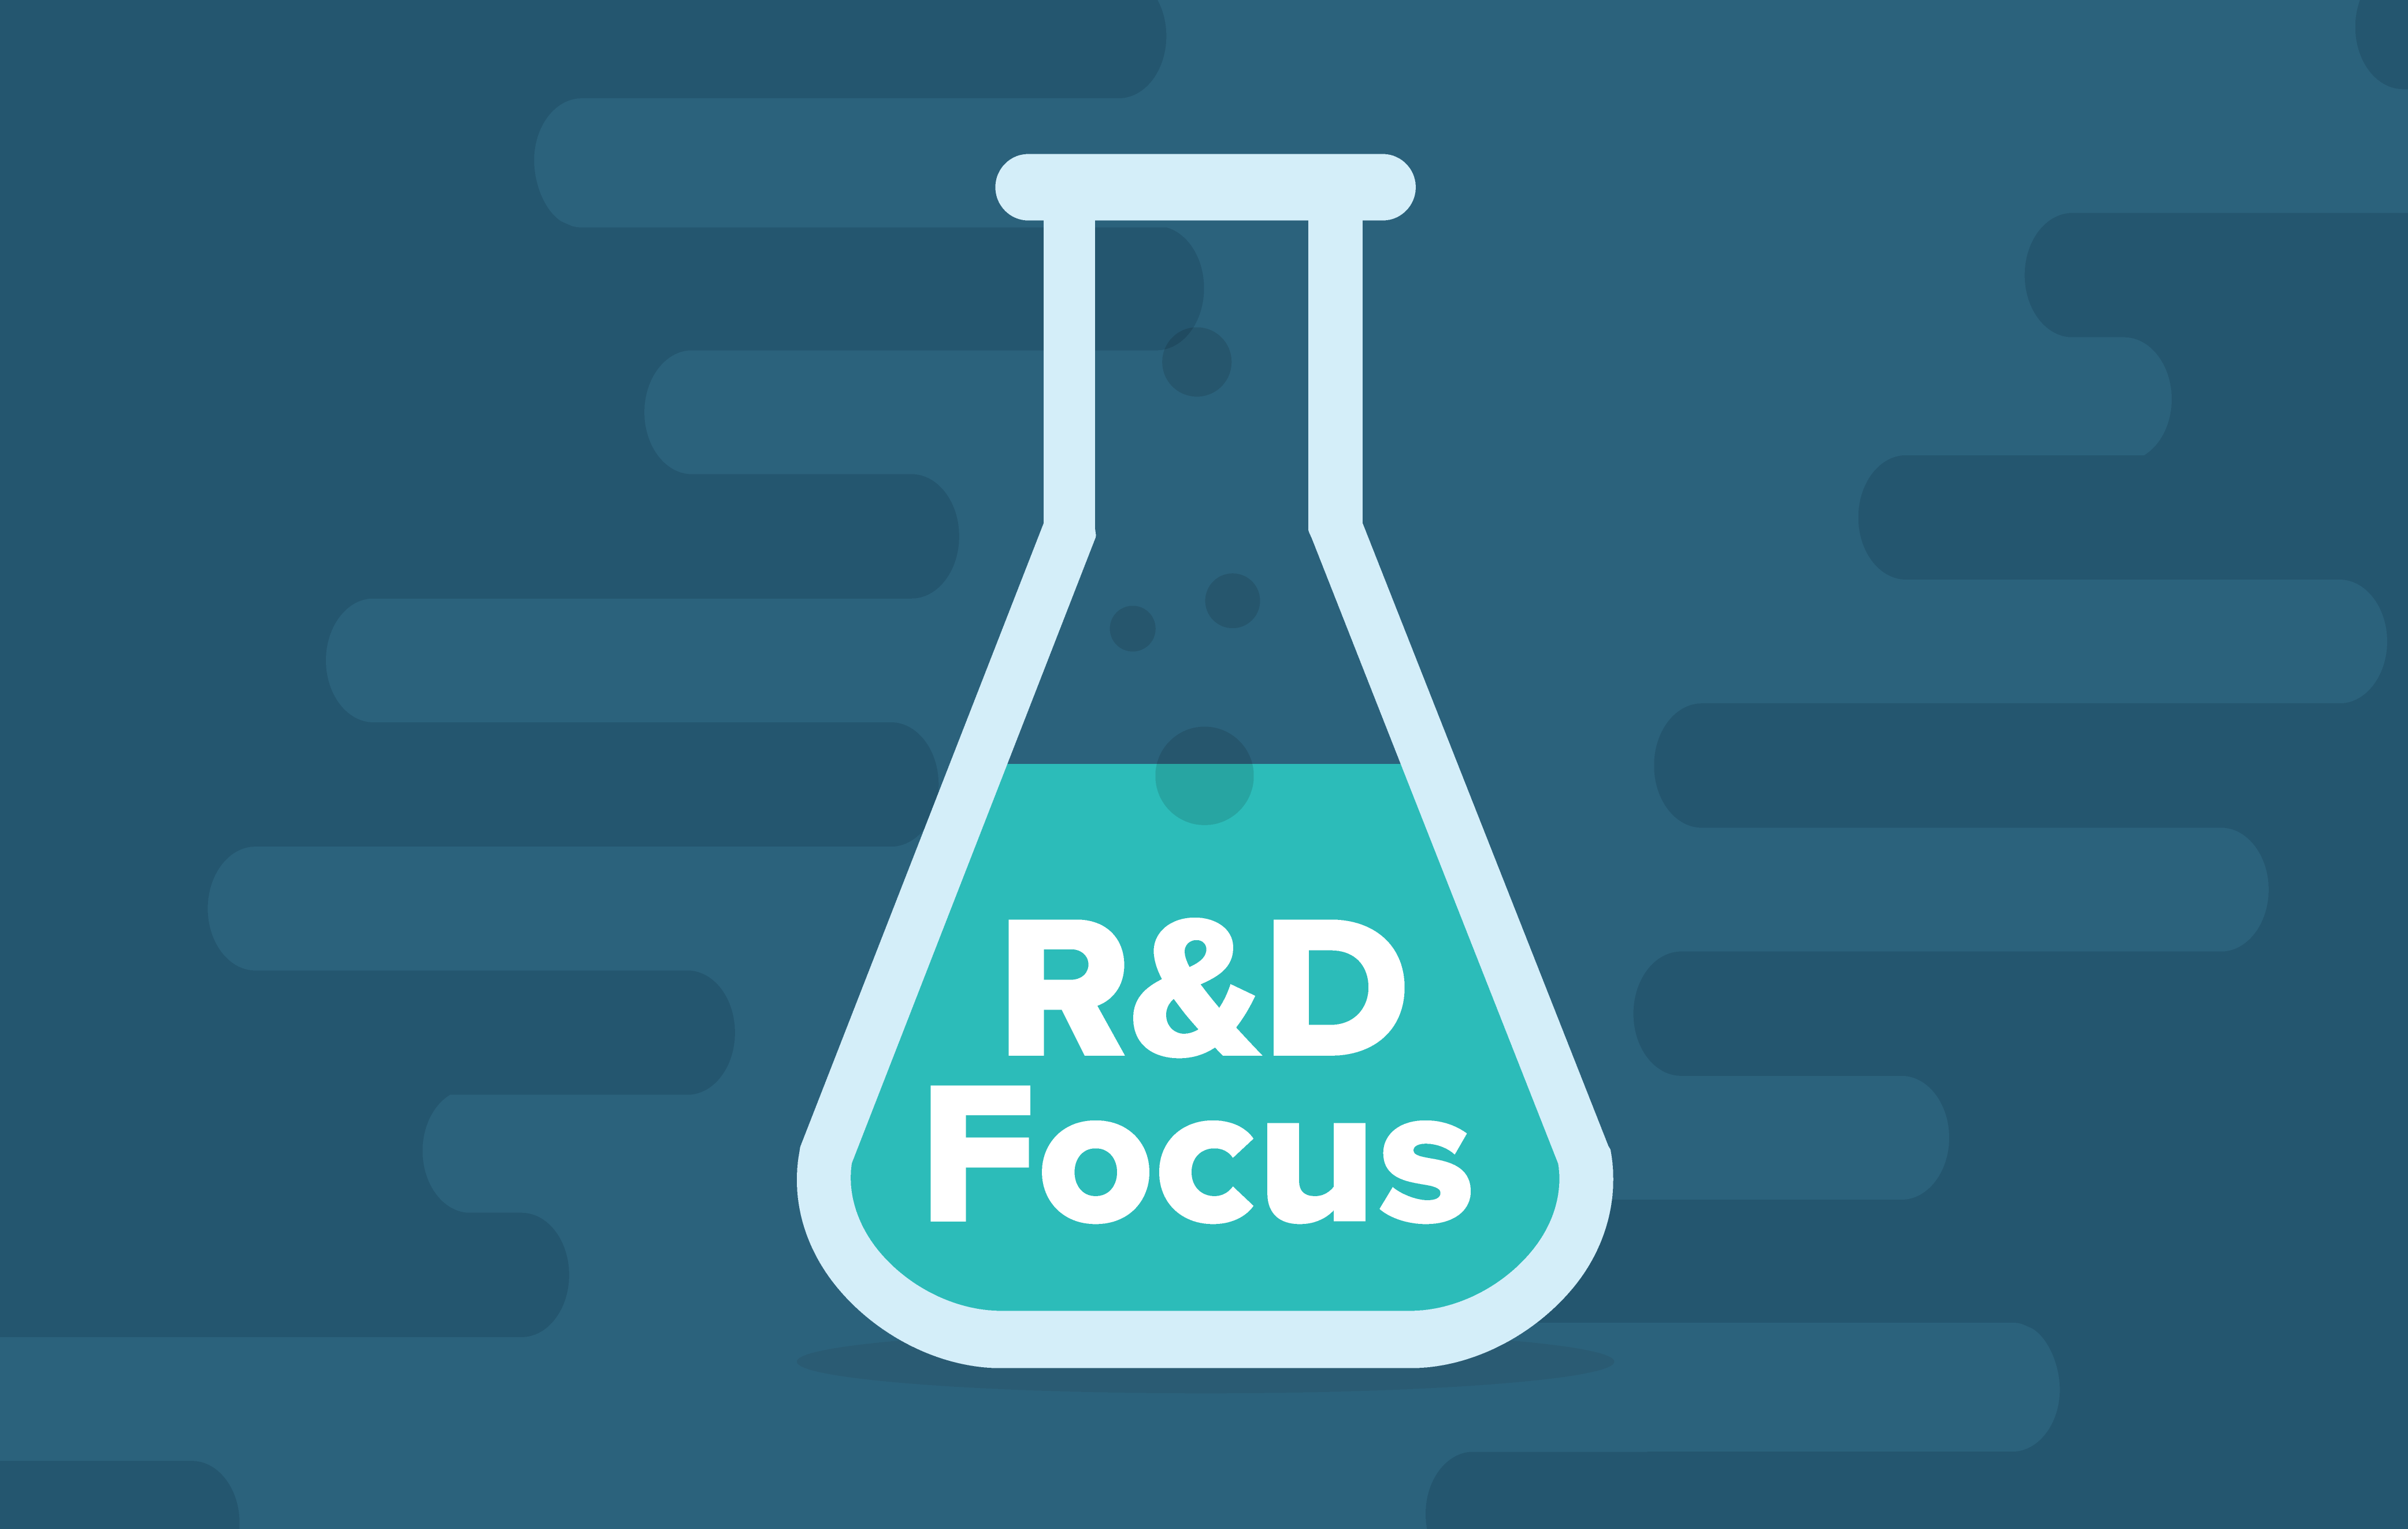 R&D Focus: New report shows nearly 600 medicines in development for pediatric patients